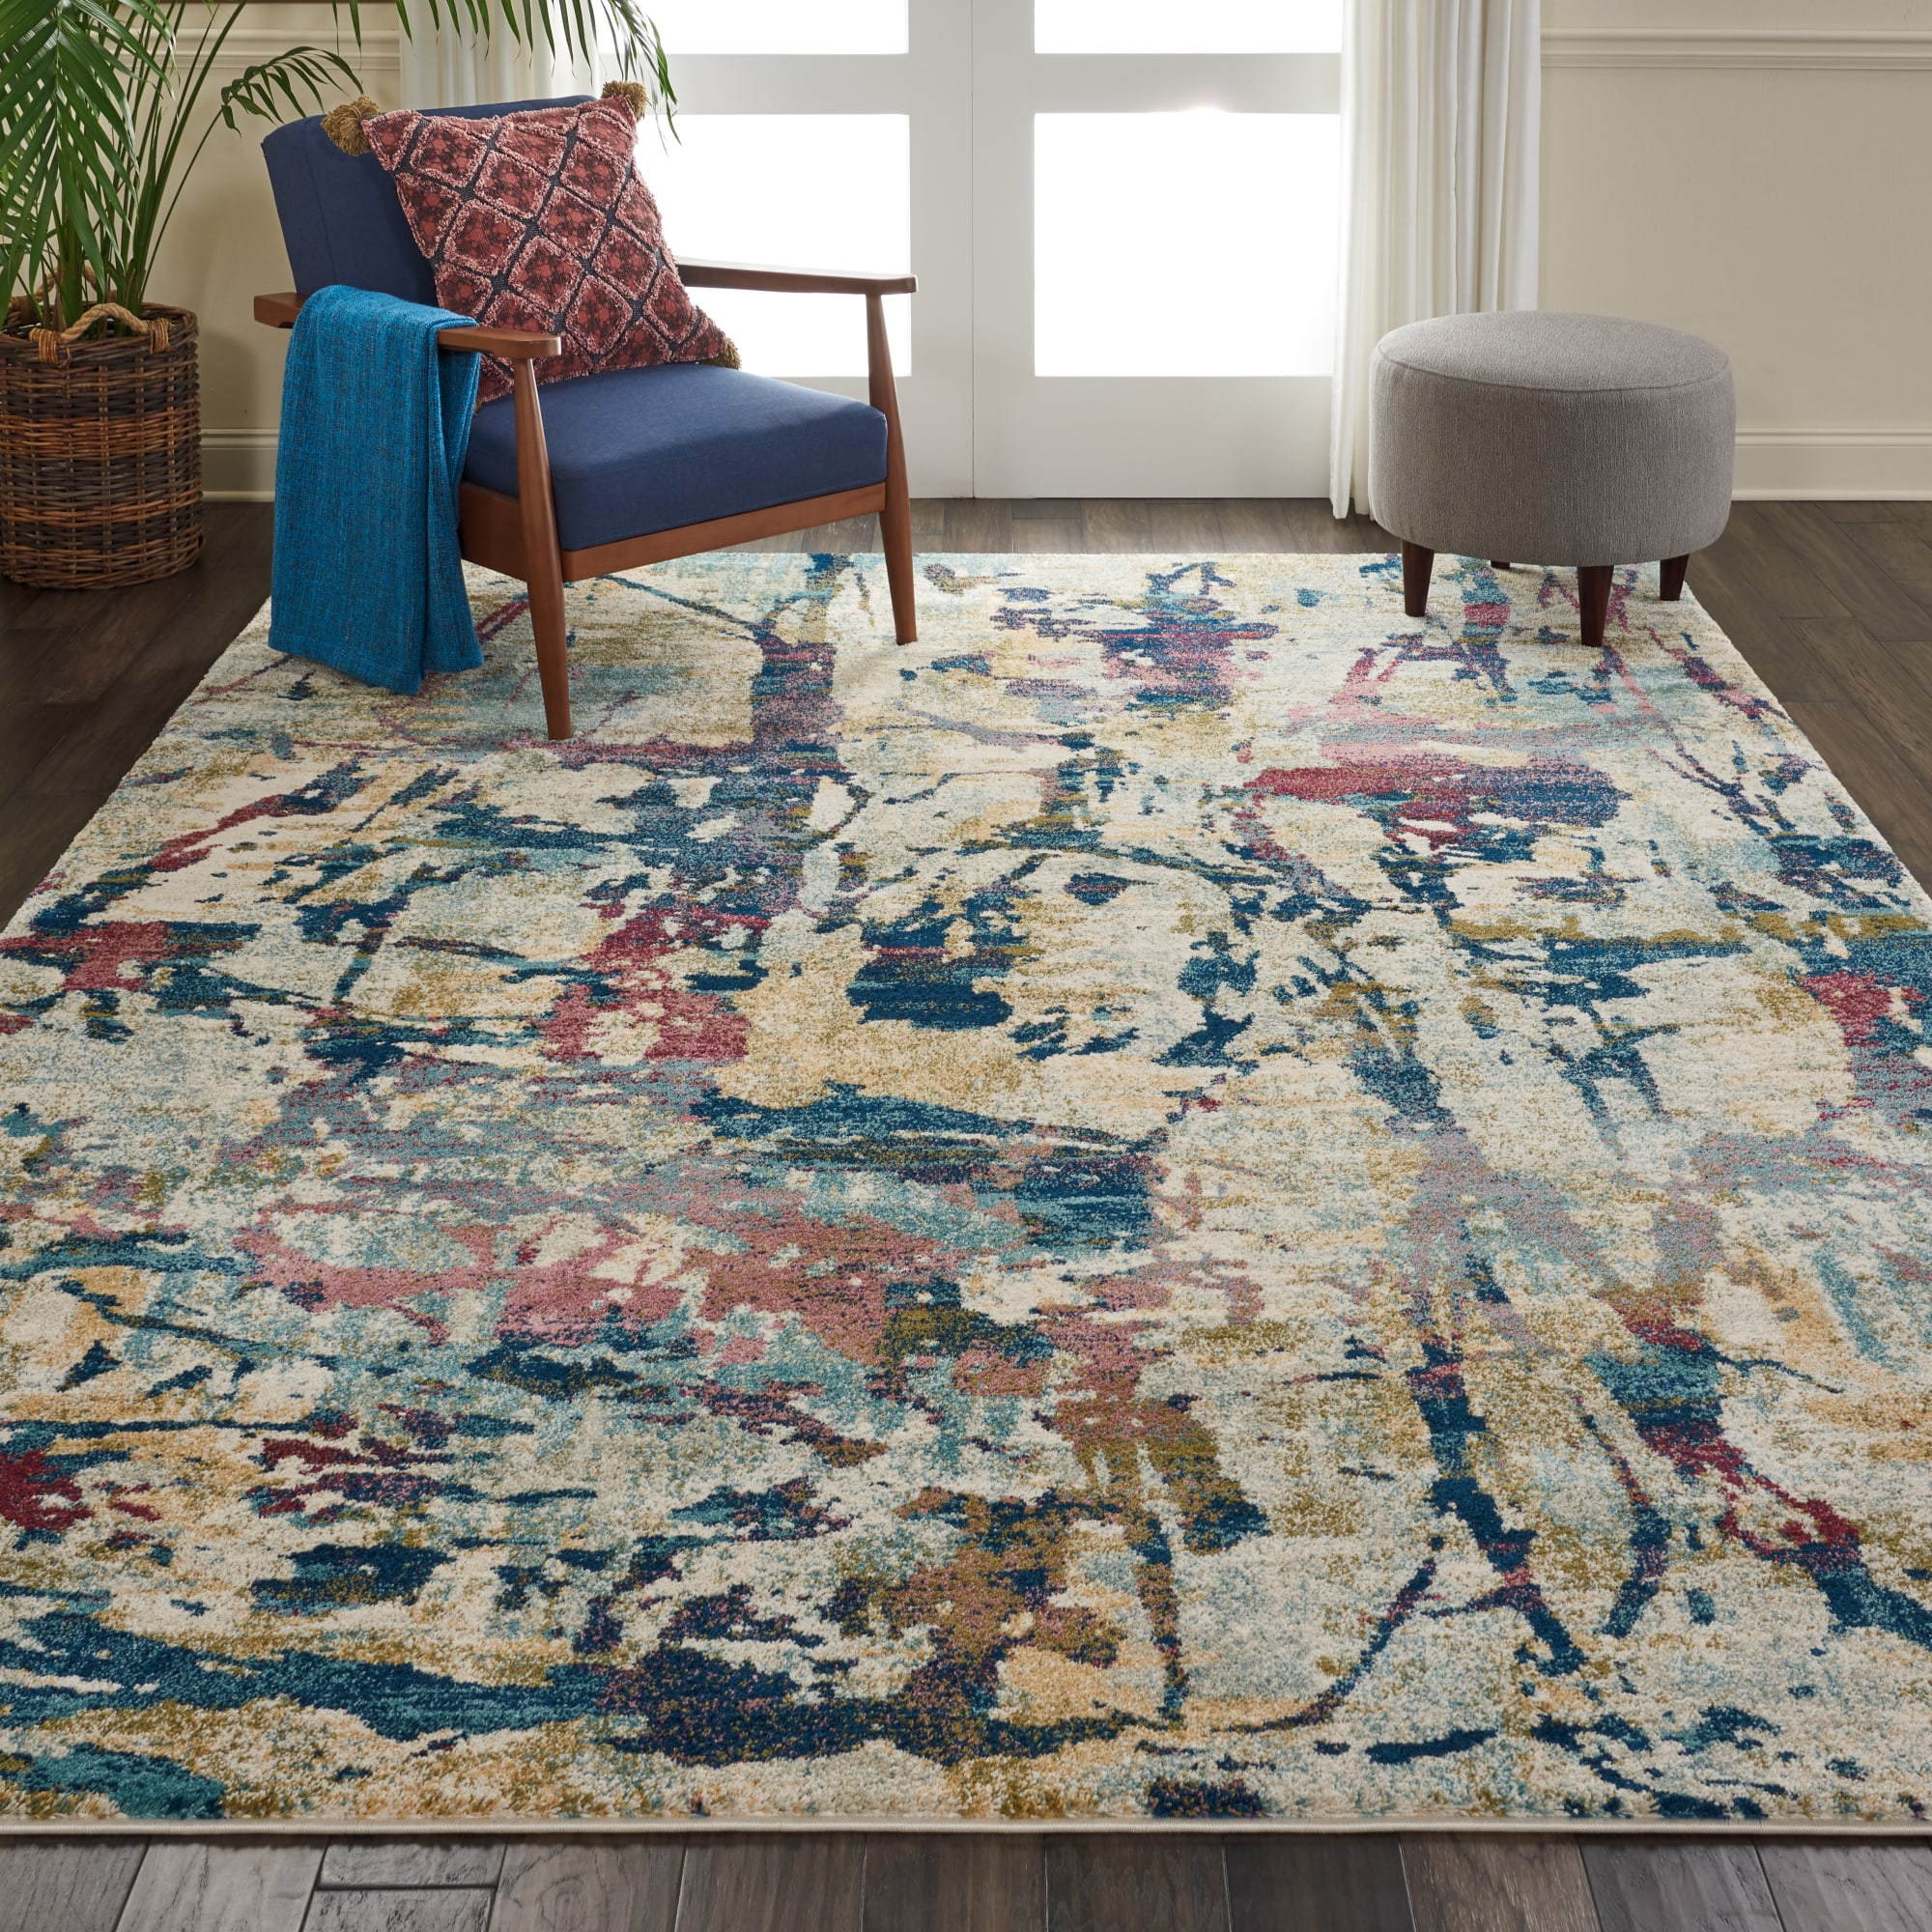 Fusion Rug FSS10 Cream/Multi